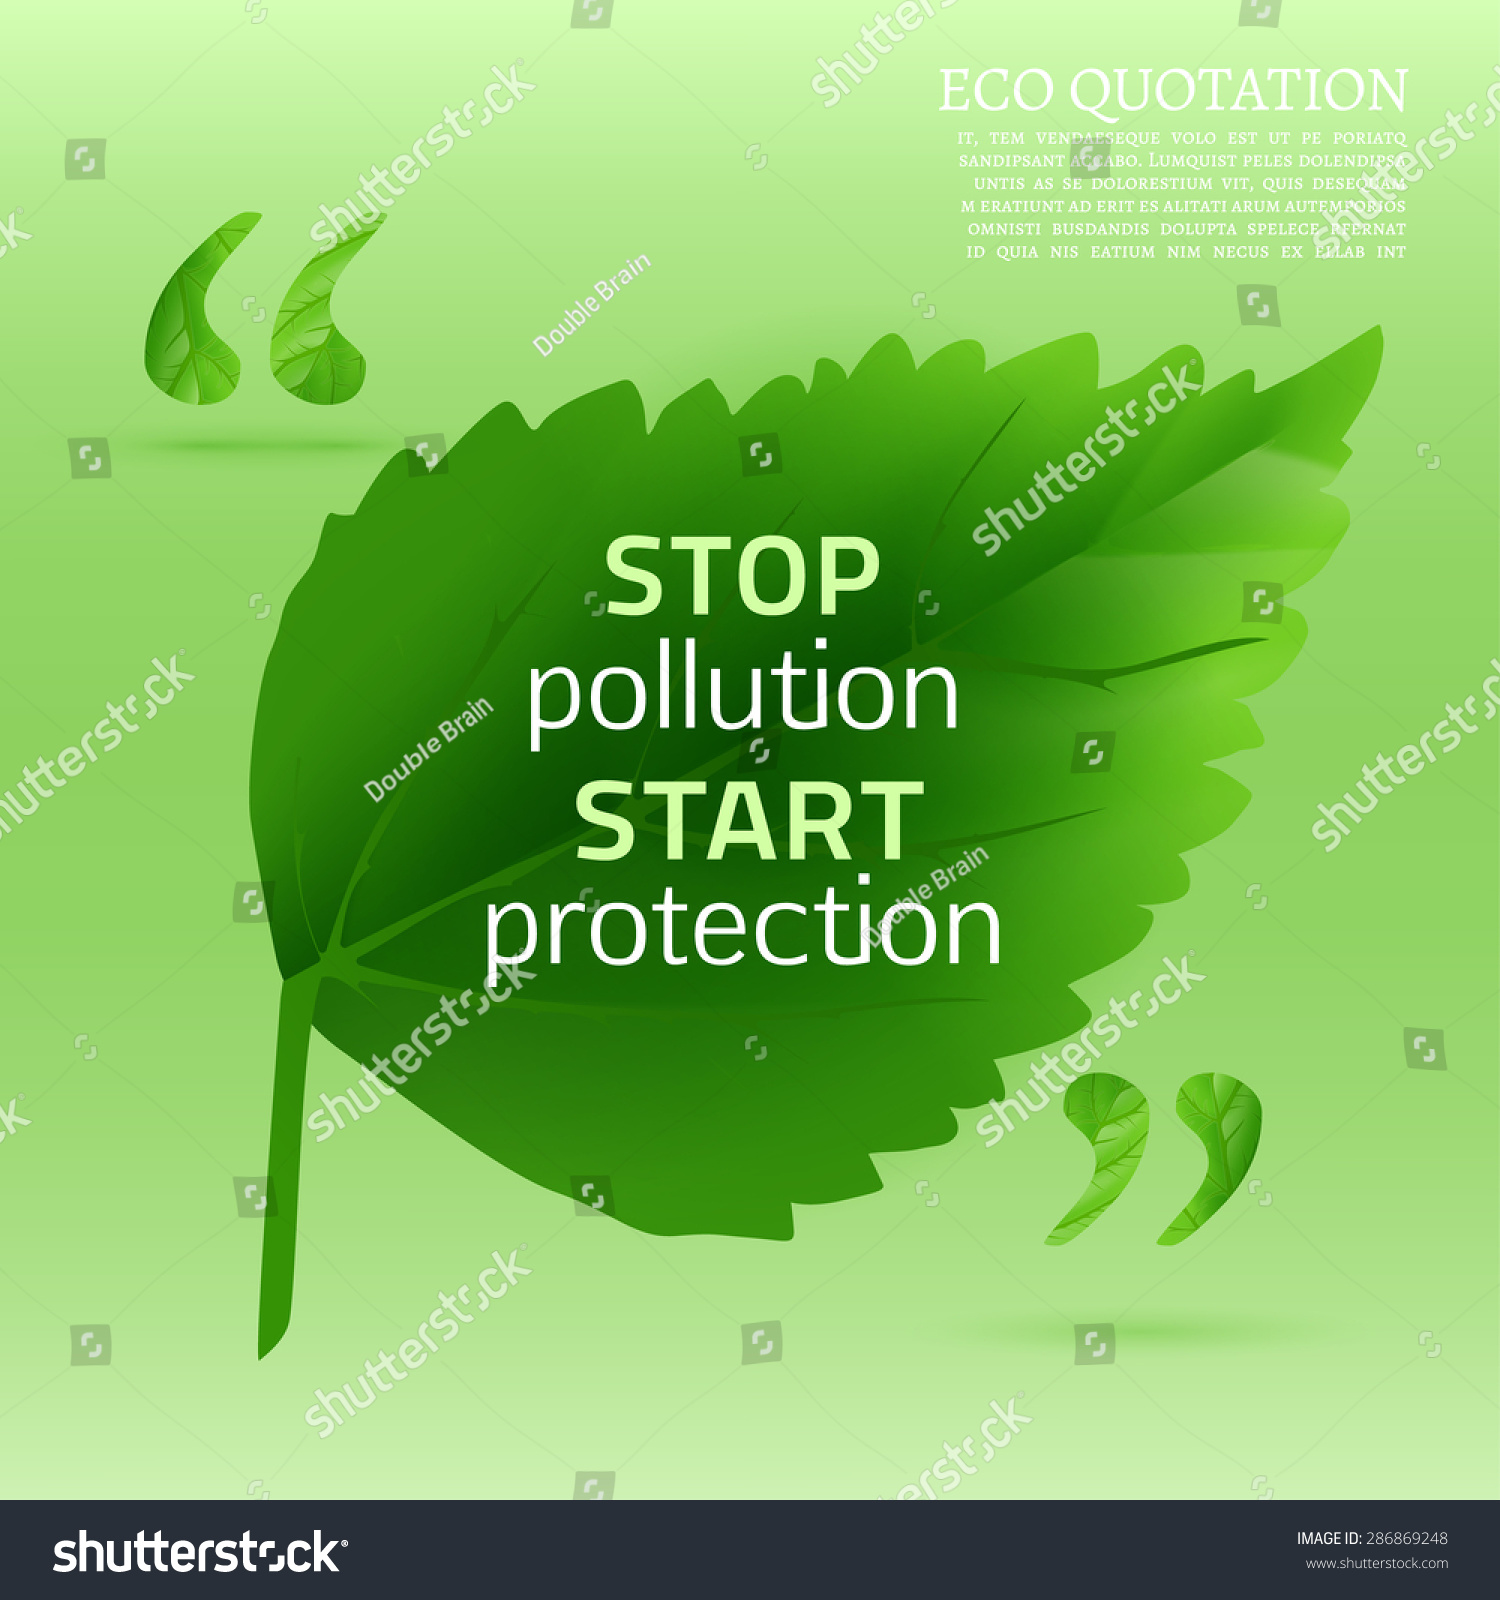 Pollution Quotes Infographic Illustration Beautiful Abstract Bio Background Stock